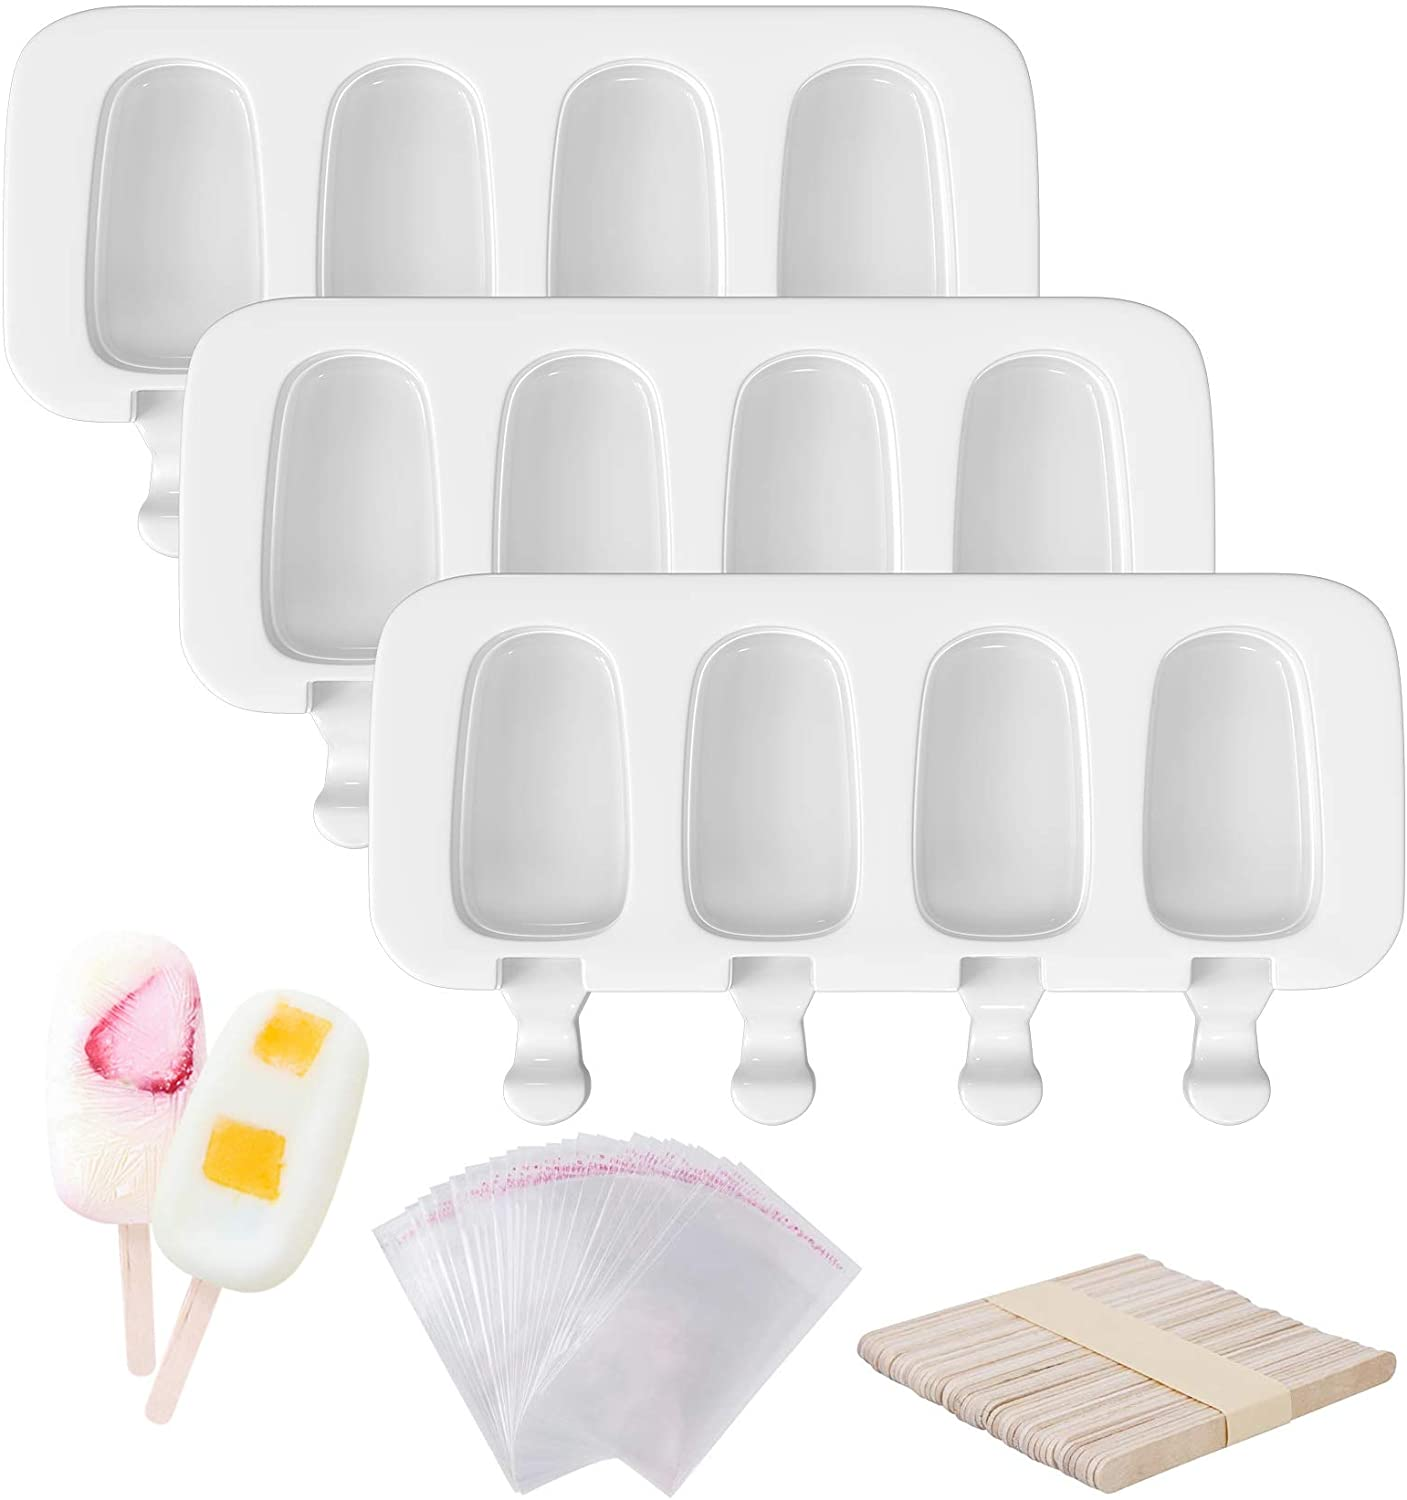 Ouddy 3 Pcs Popsicle 70% Max 80% OFF OFF Outlet 12 Molds Silicone Cavities